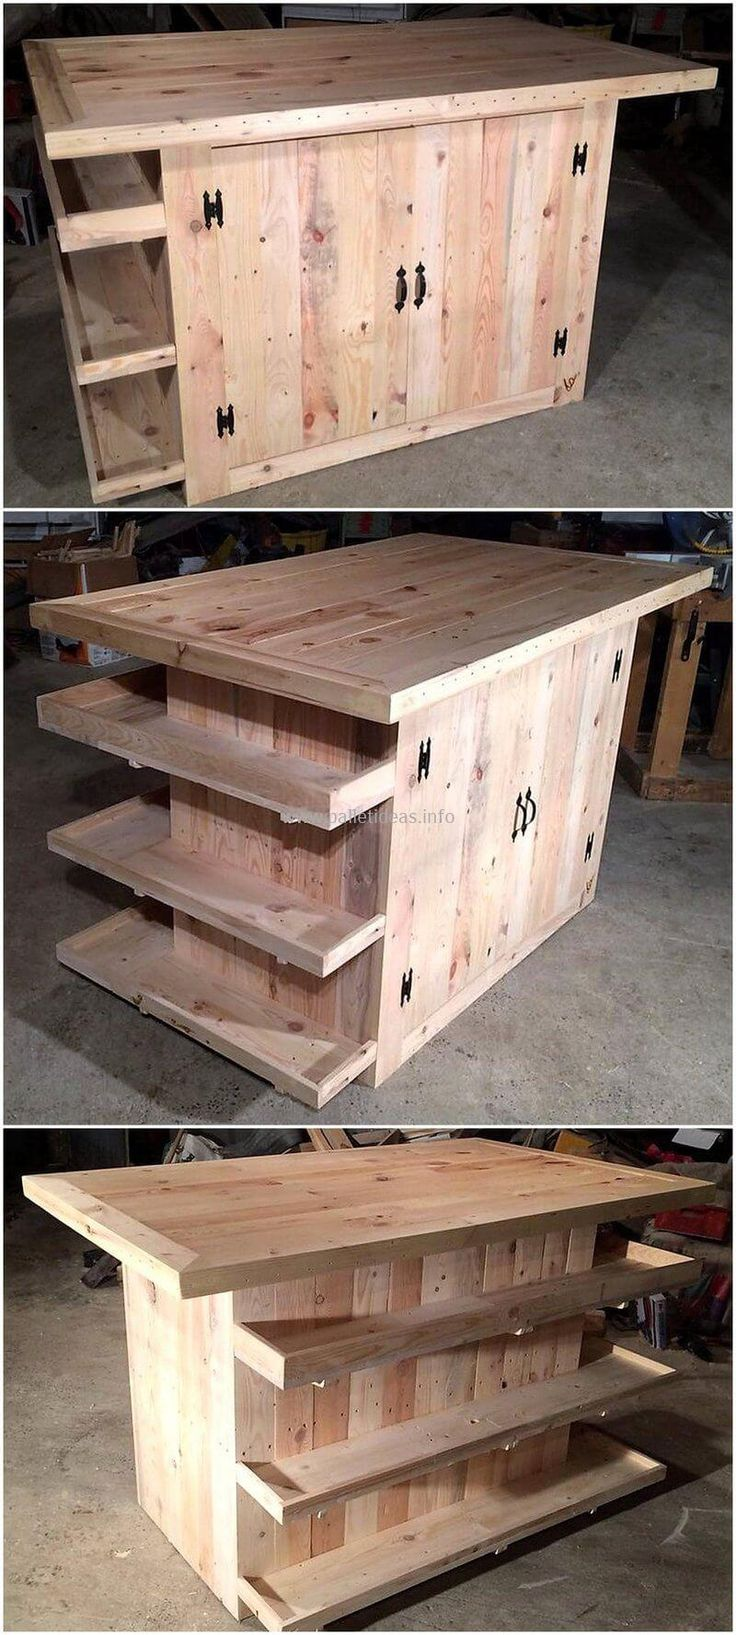 Pallet Upcycling Ideas For The Home